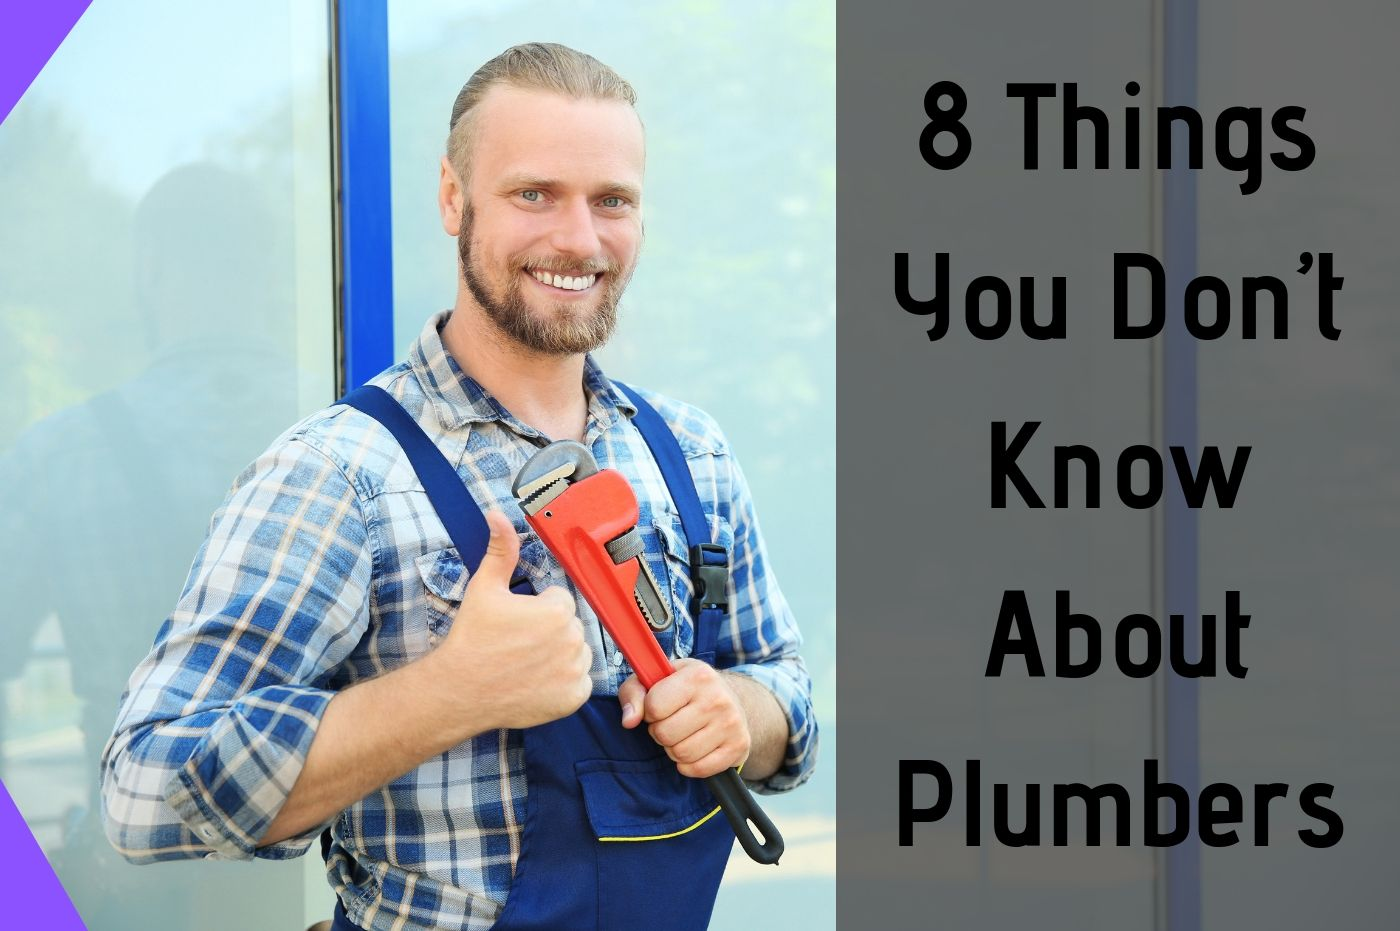 8 Things You Don't Know About Plumbers